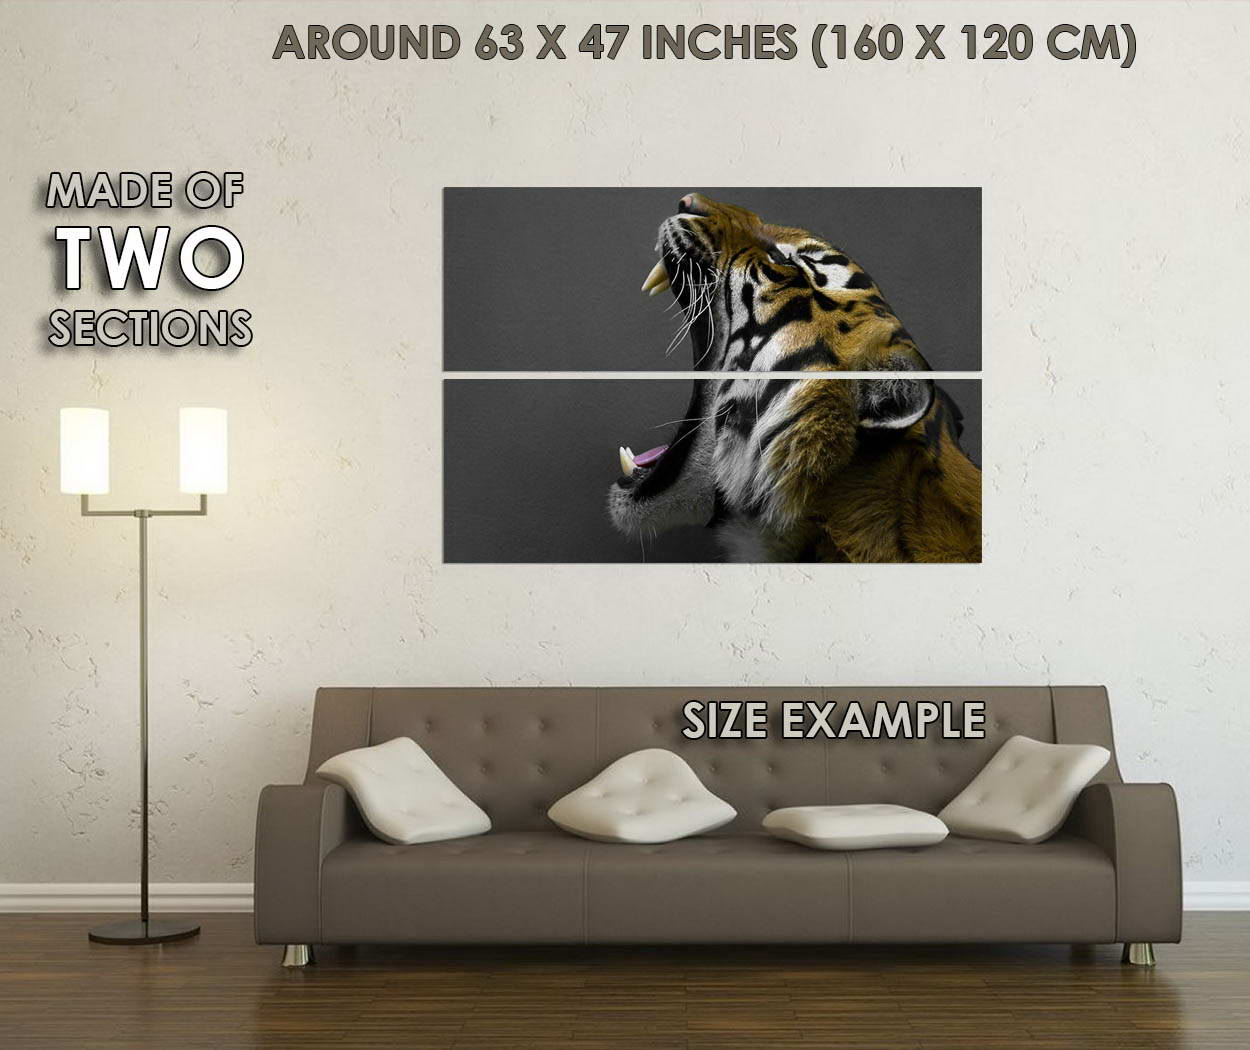 11914 Angry Tiger Shout Africa Wild Animals Animals Animals Poster AFFICHE 81e207